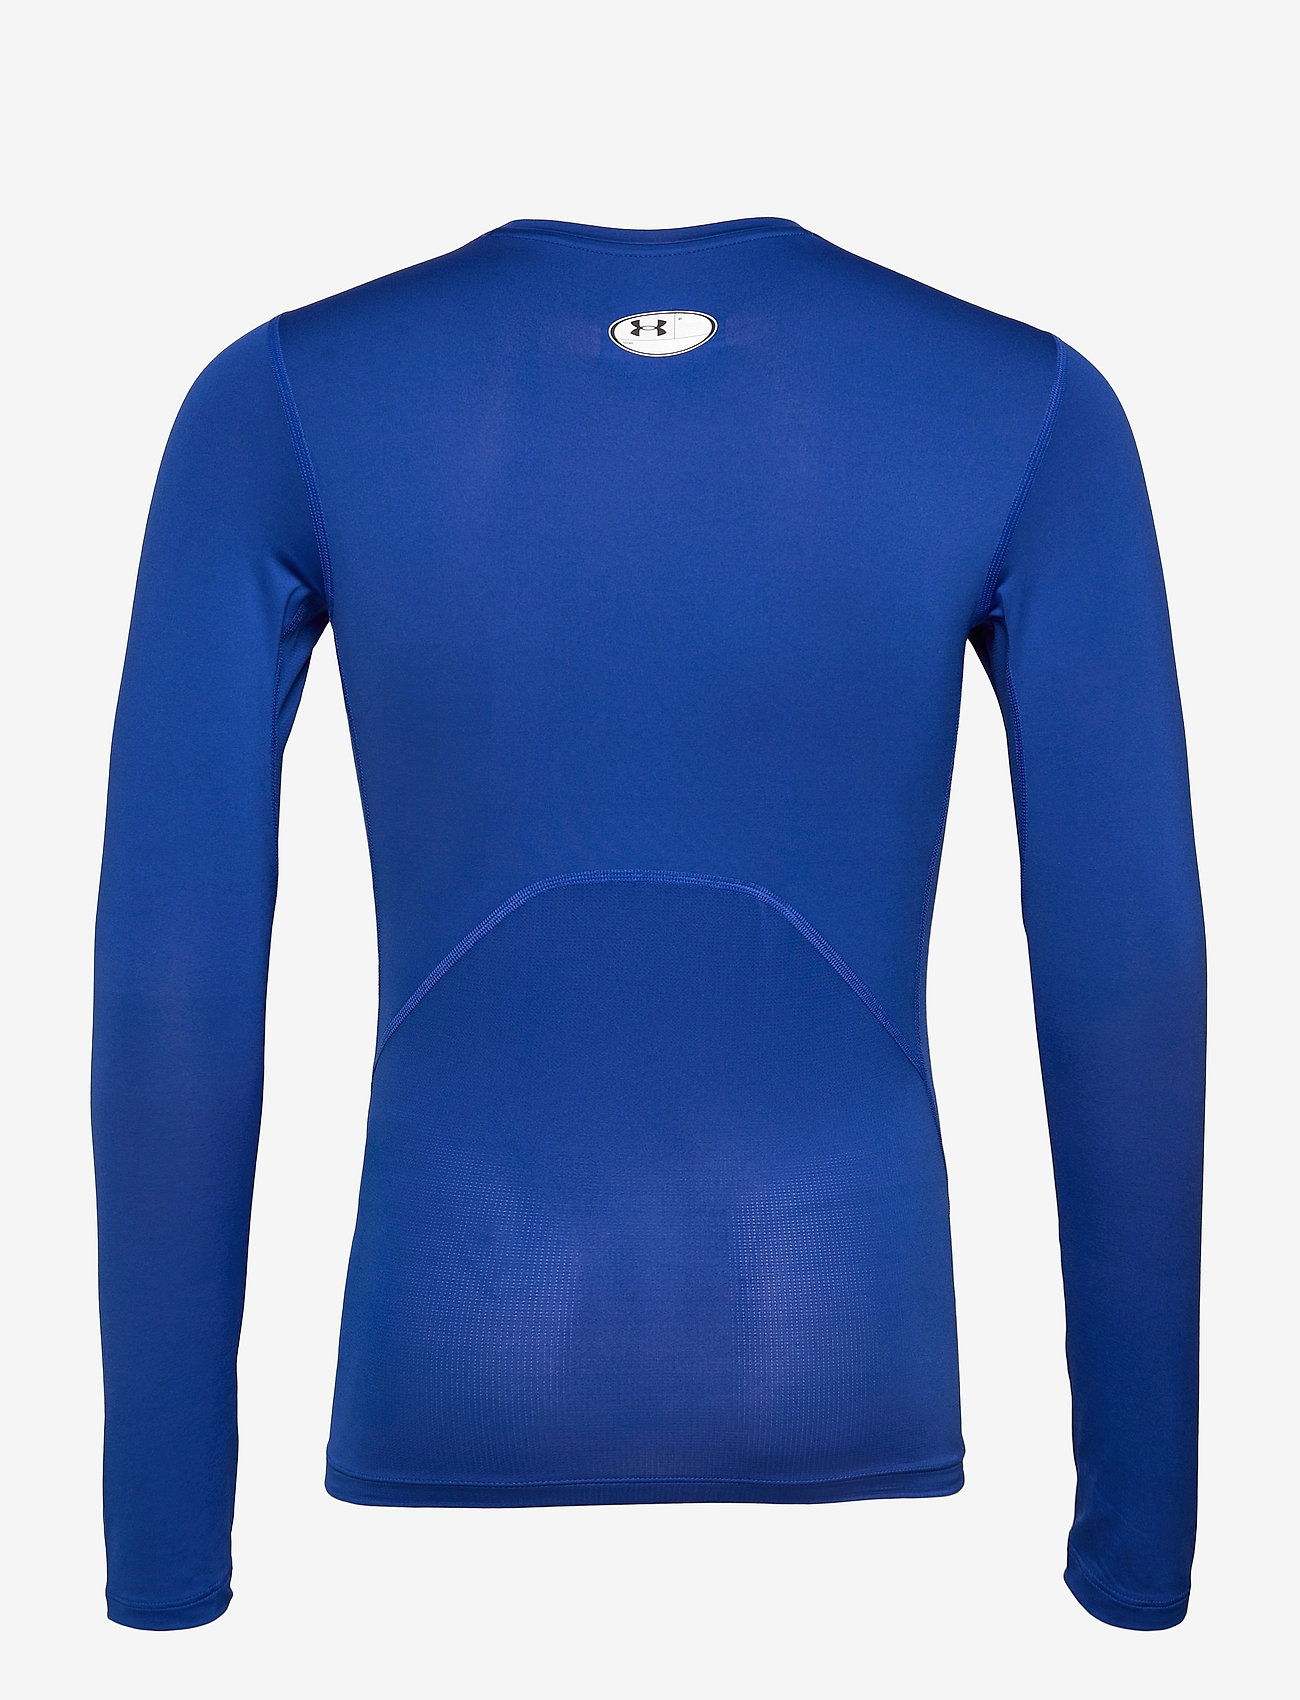 Under Armour - UA HG Armour Comp LS - base layer tops - royal - 1